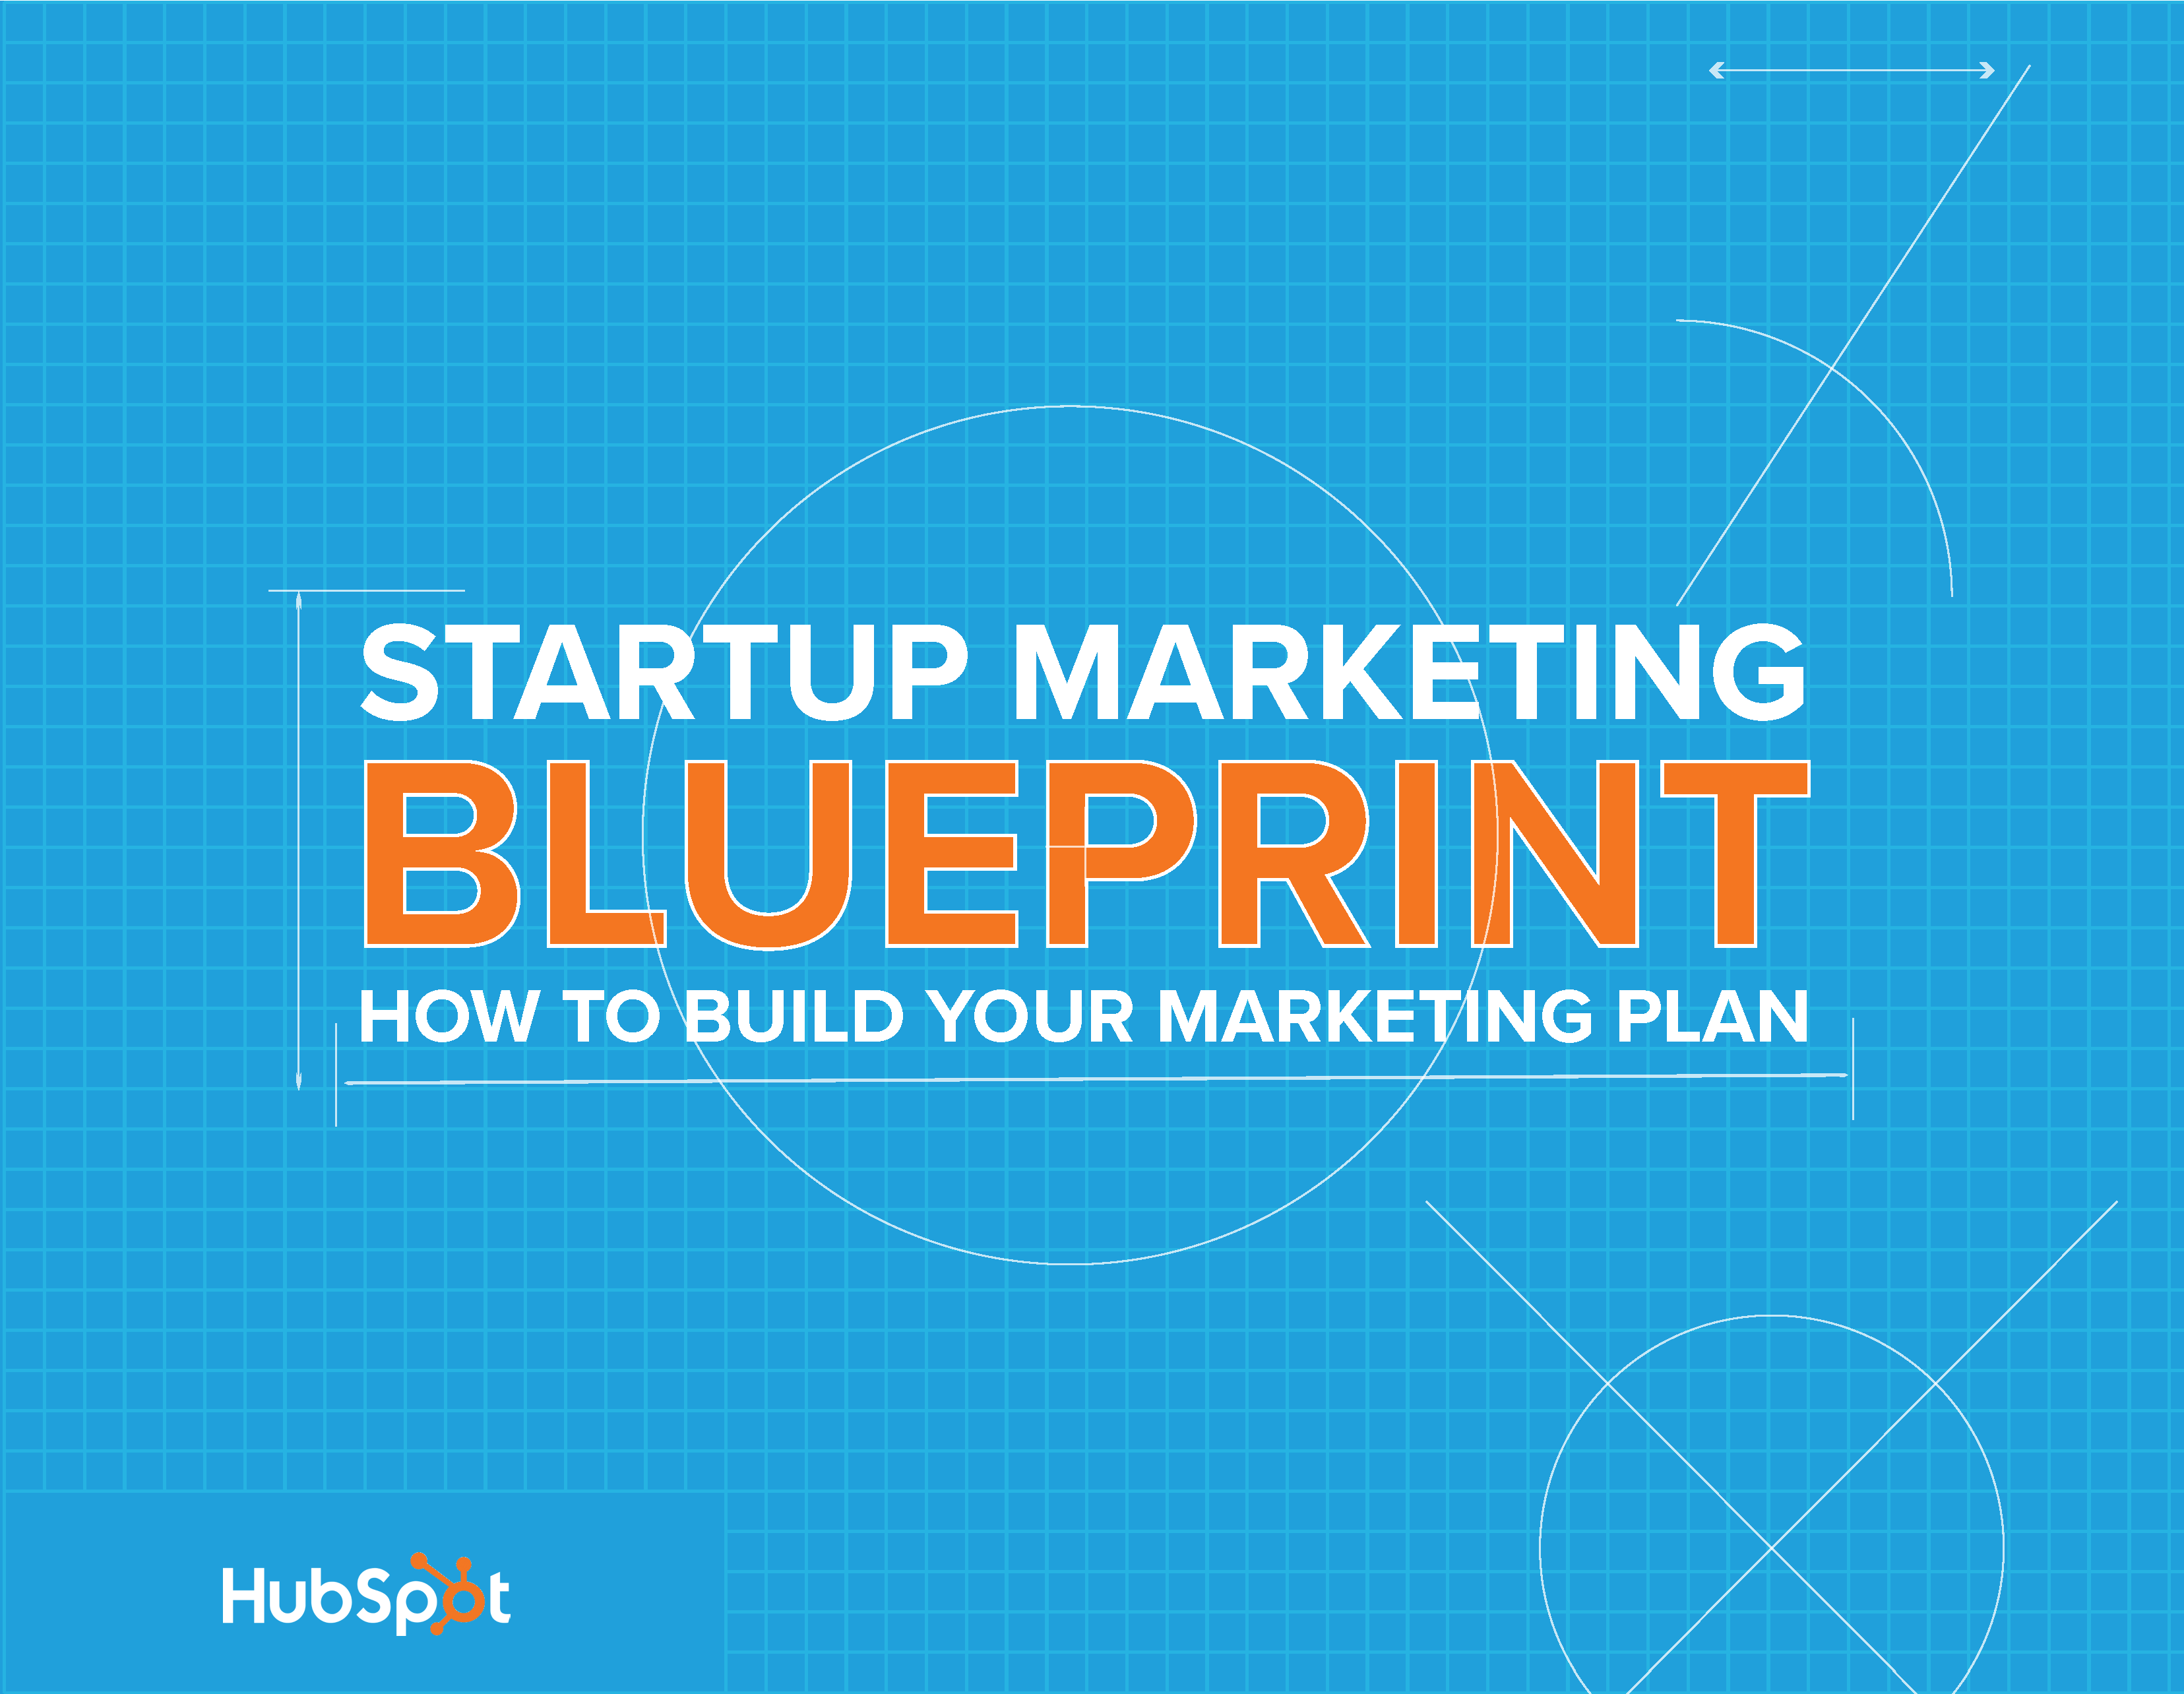 Startup marketing plan blueprint startup marketing blueprint preview malvernweather Choice Image